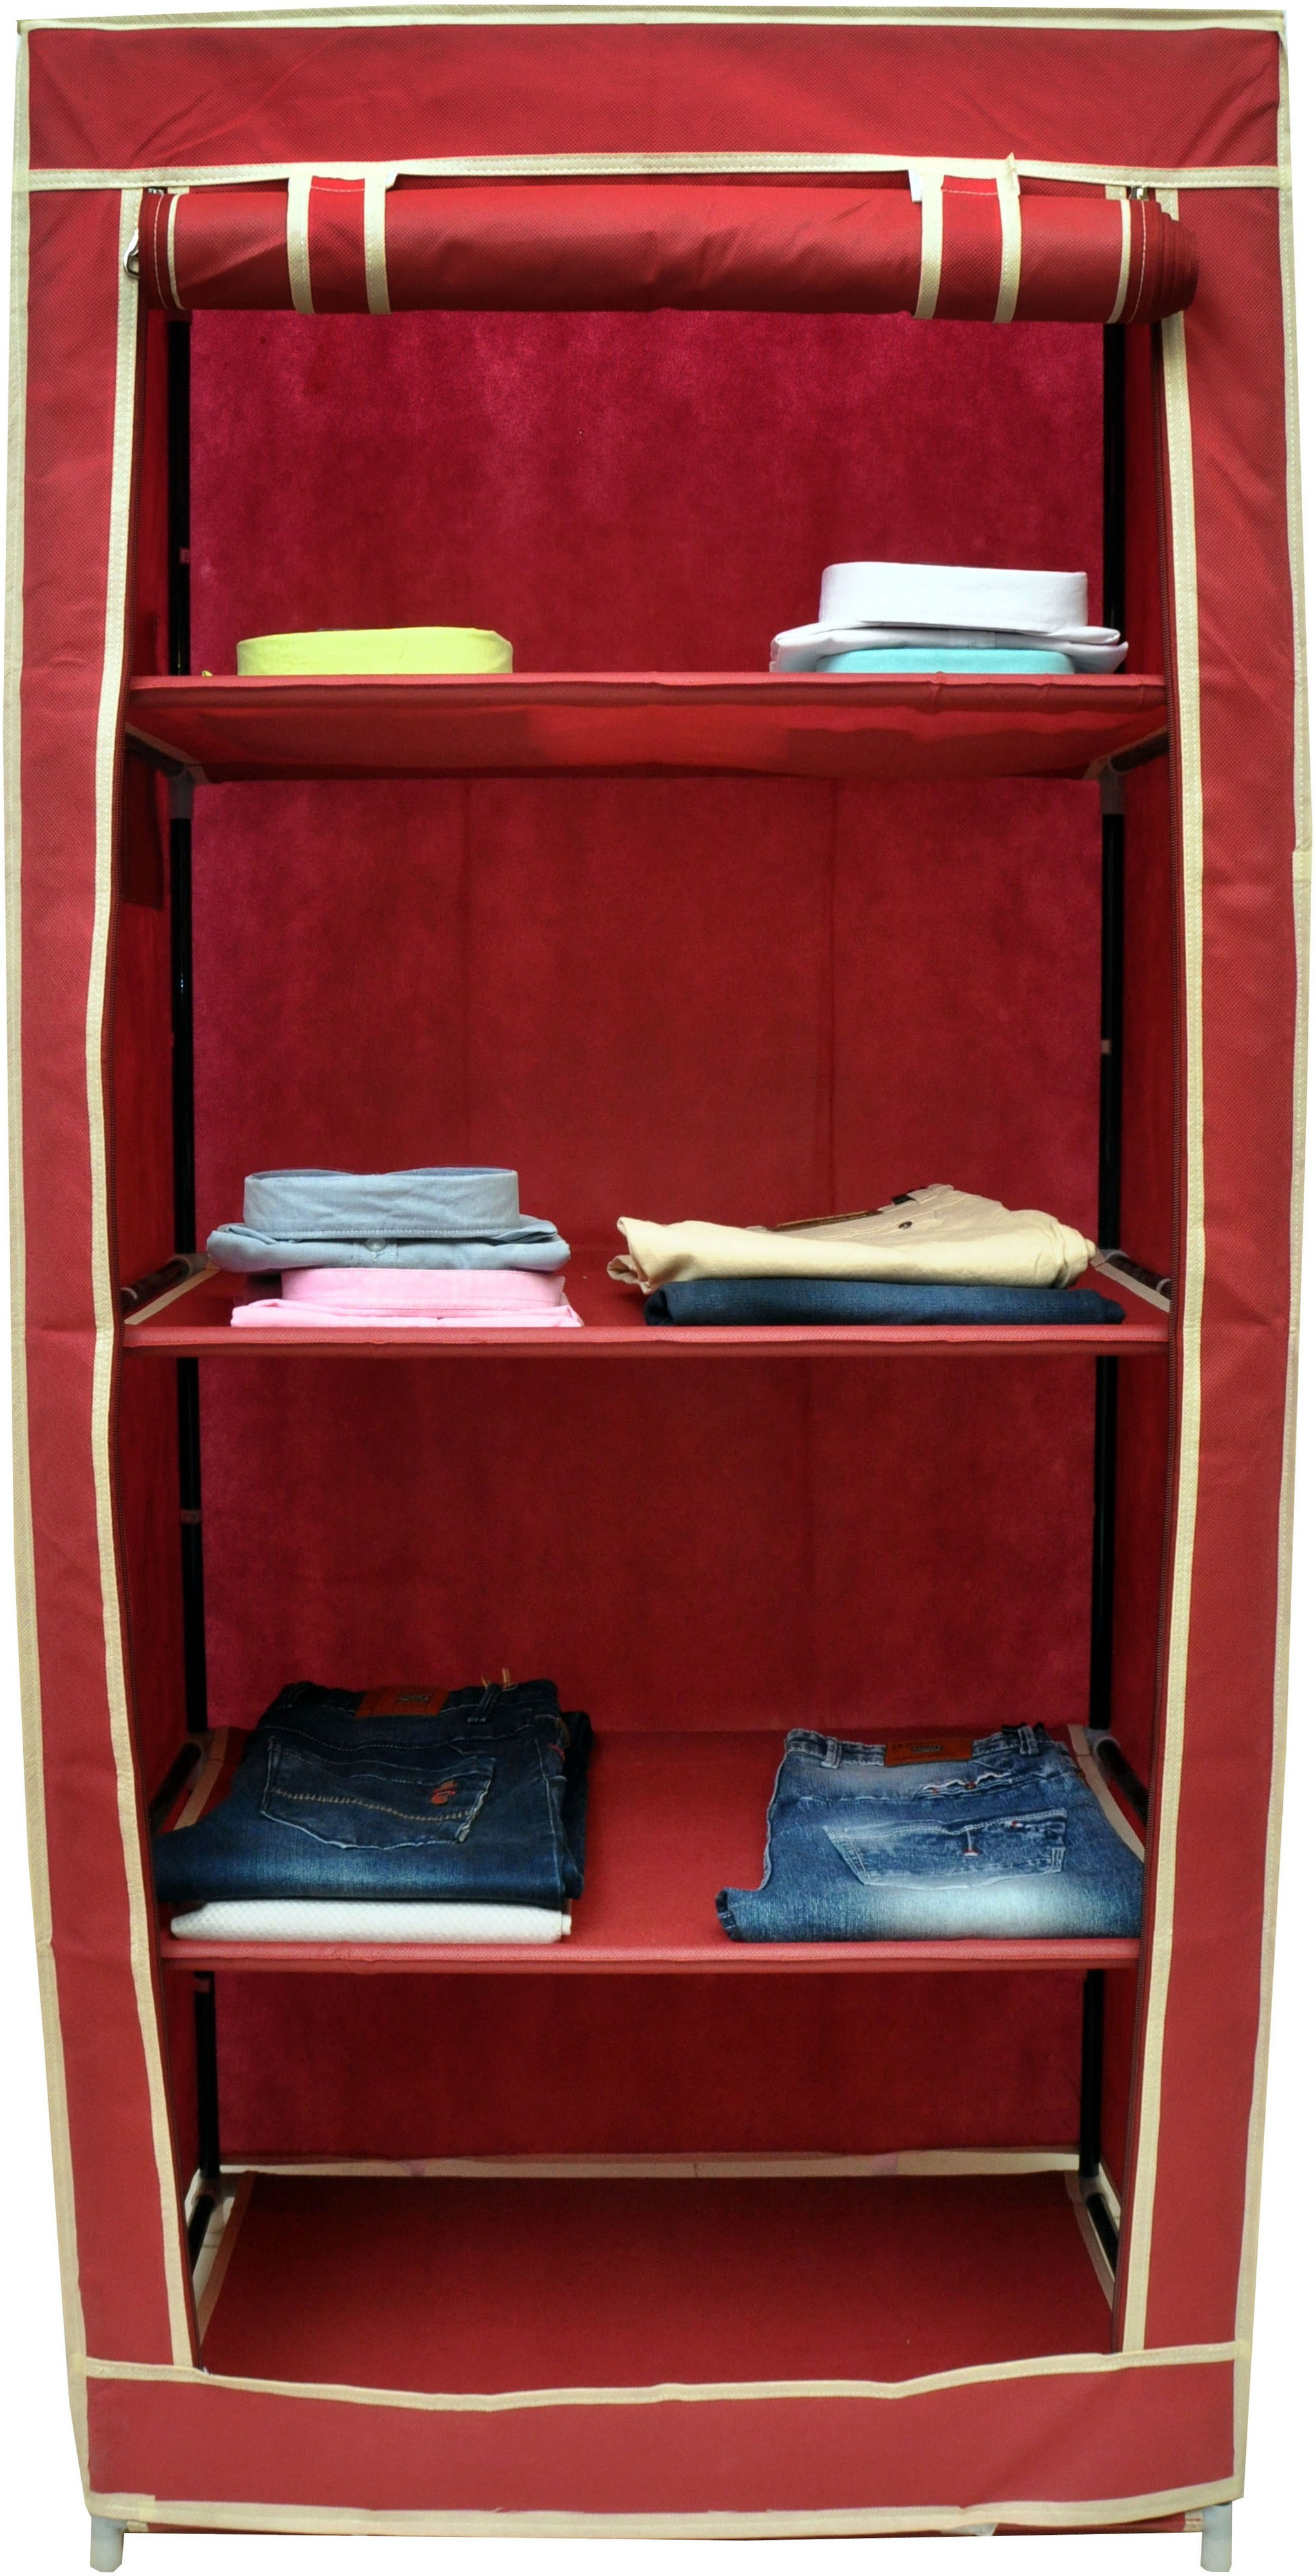 View Solace Single Row Carbon Steel Collapsible Wardrobe(Finish Color - Maroon) Furniture (Solace)